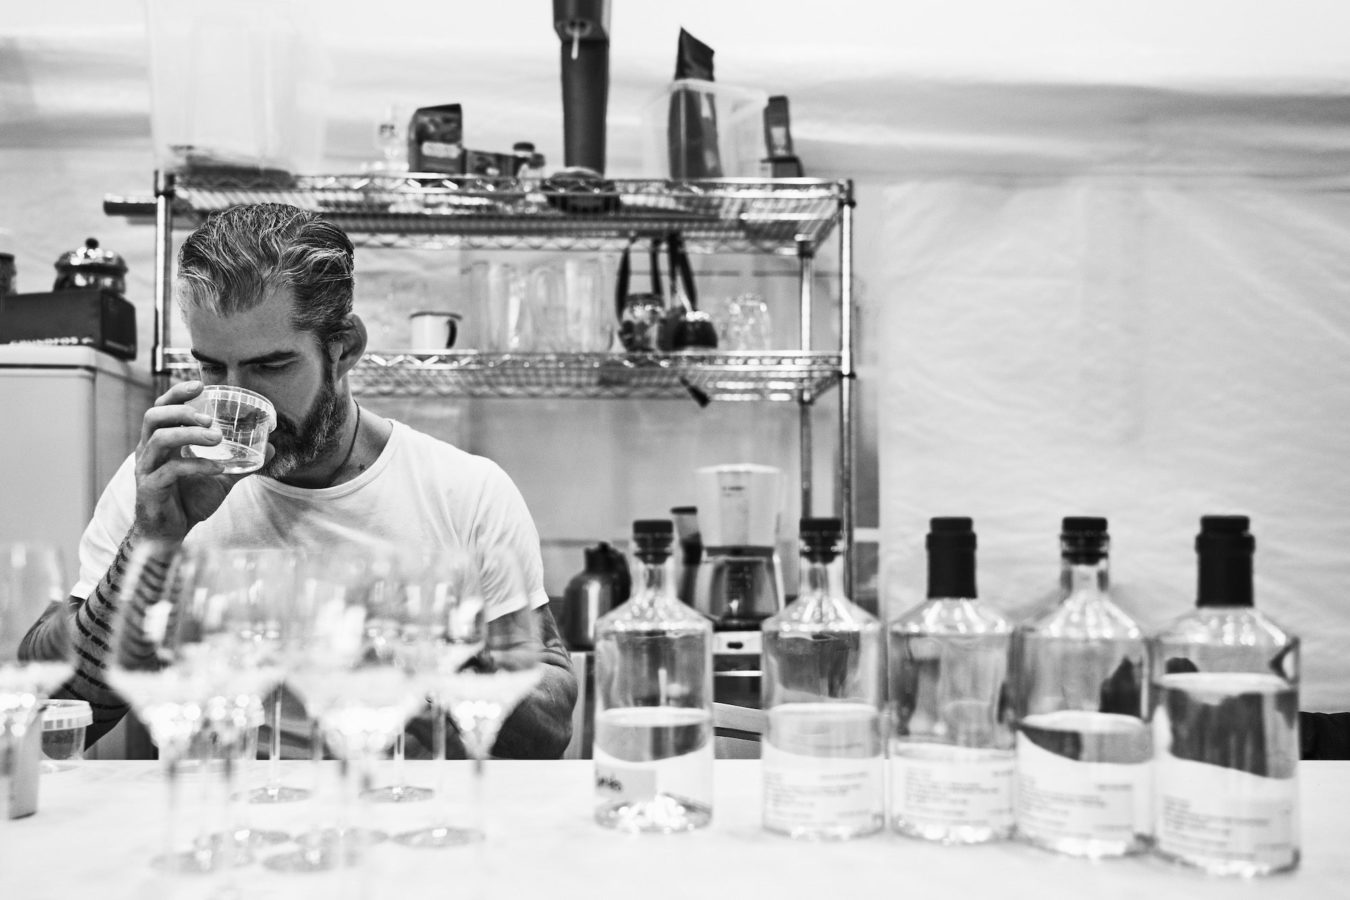 Empirical's co-founder Lars Williams on his creative process and the future of alcohol